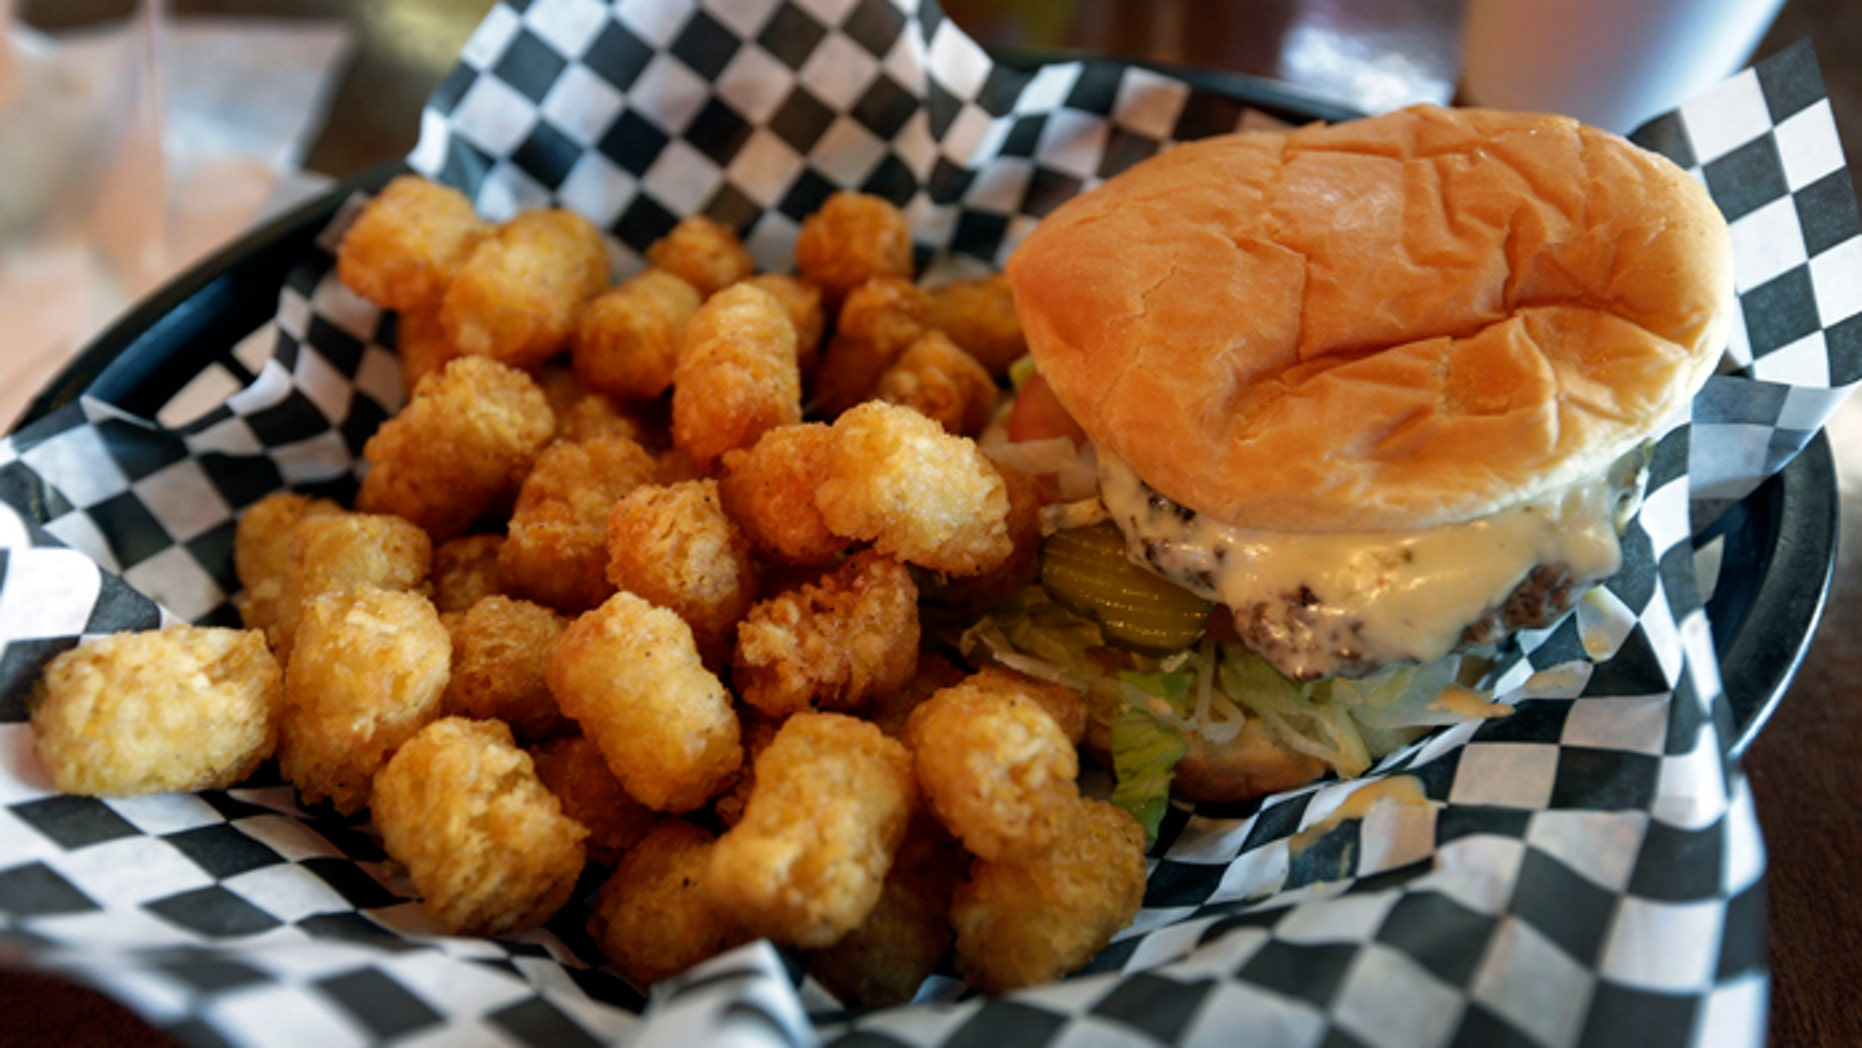 This Wednesday, Feb. 6, 2013 photo shows a hamburger and tater tots at a restaurant in Charlotte, N.C. Deep-fried foods may be causing trouble in the Deep South. People whose diets are heavy on them and sugary drinks were more likely to suffer a stroke, according to a new study released Thursday, Feb. 7, 2013. (AP Photo/Chuck Burton)